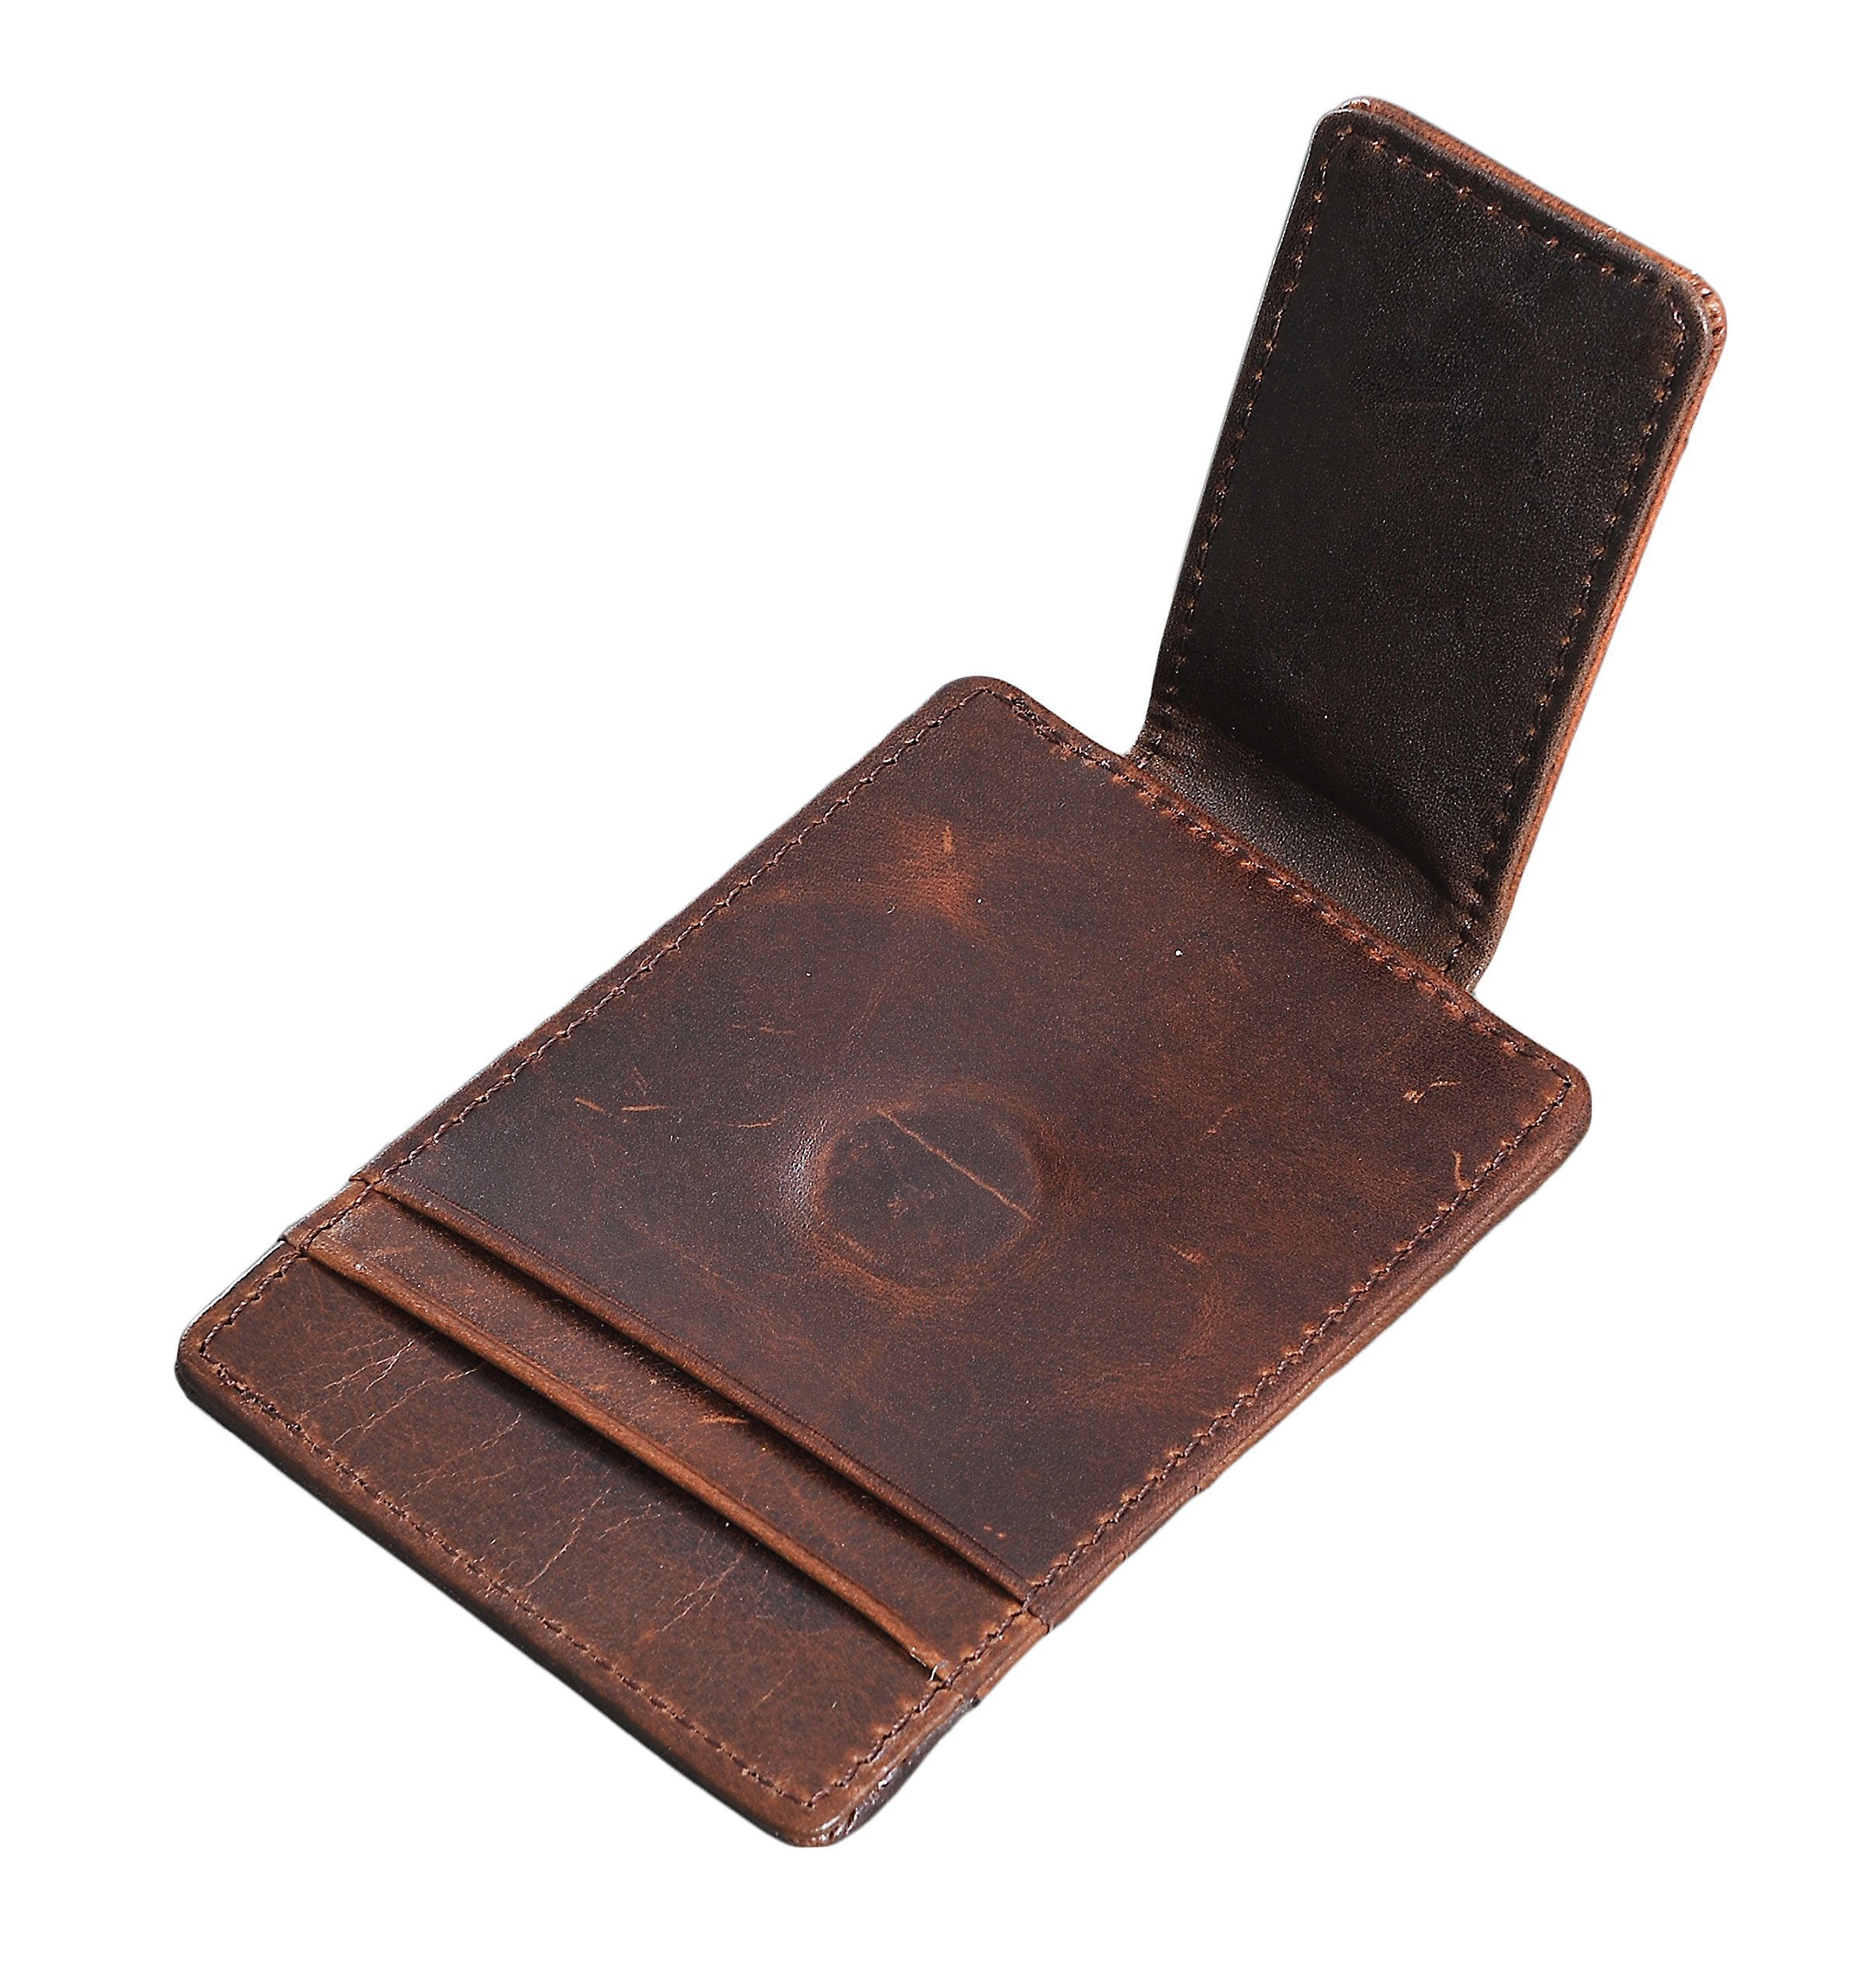 Mens Money Clip Wallet RFID Slim Wallet Genuine Leather Thin Front Pocket Wallet (Coffee (Oil Wax Leather)) by Yuhan Pretty (Image #2)